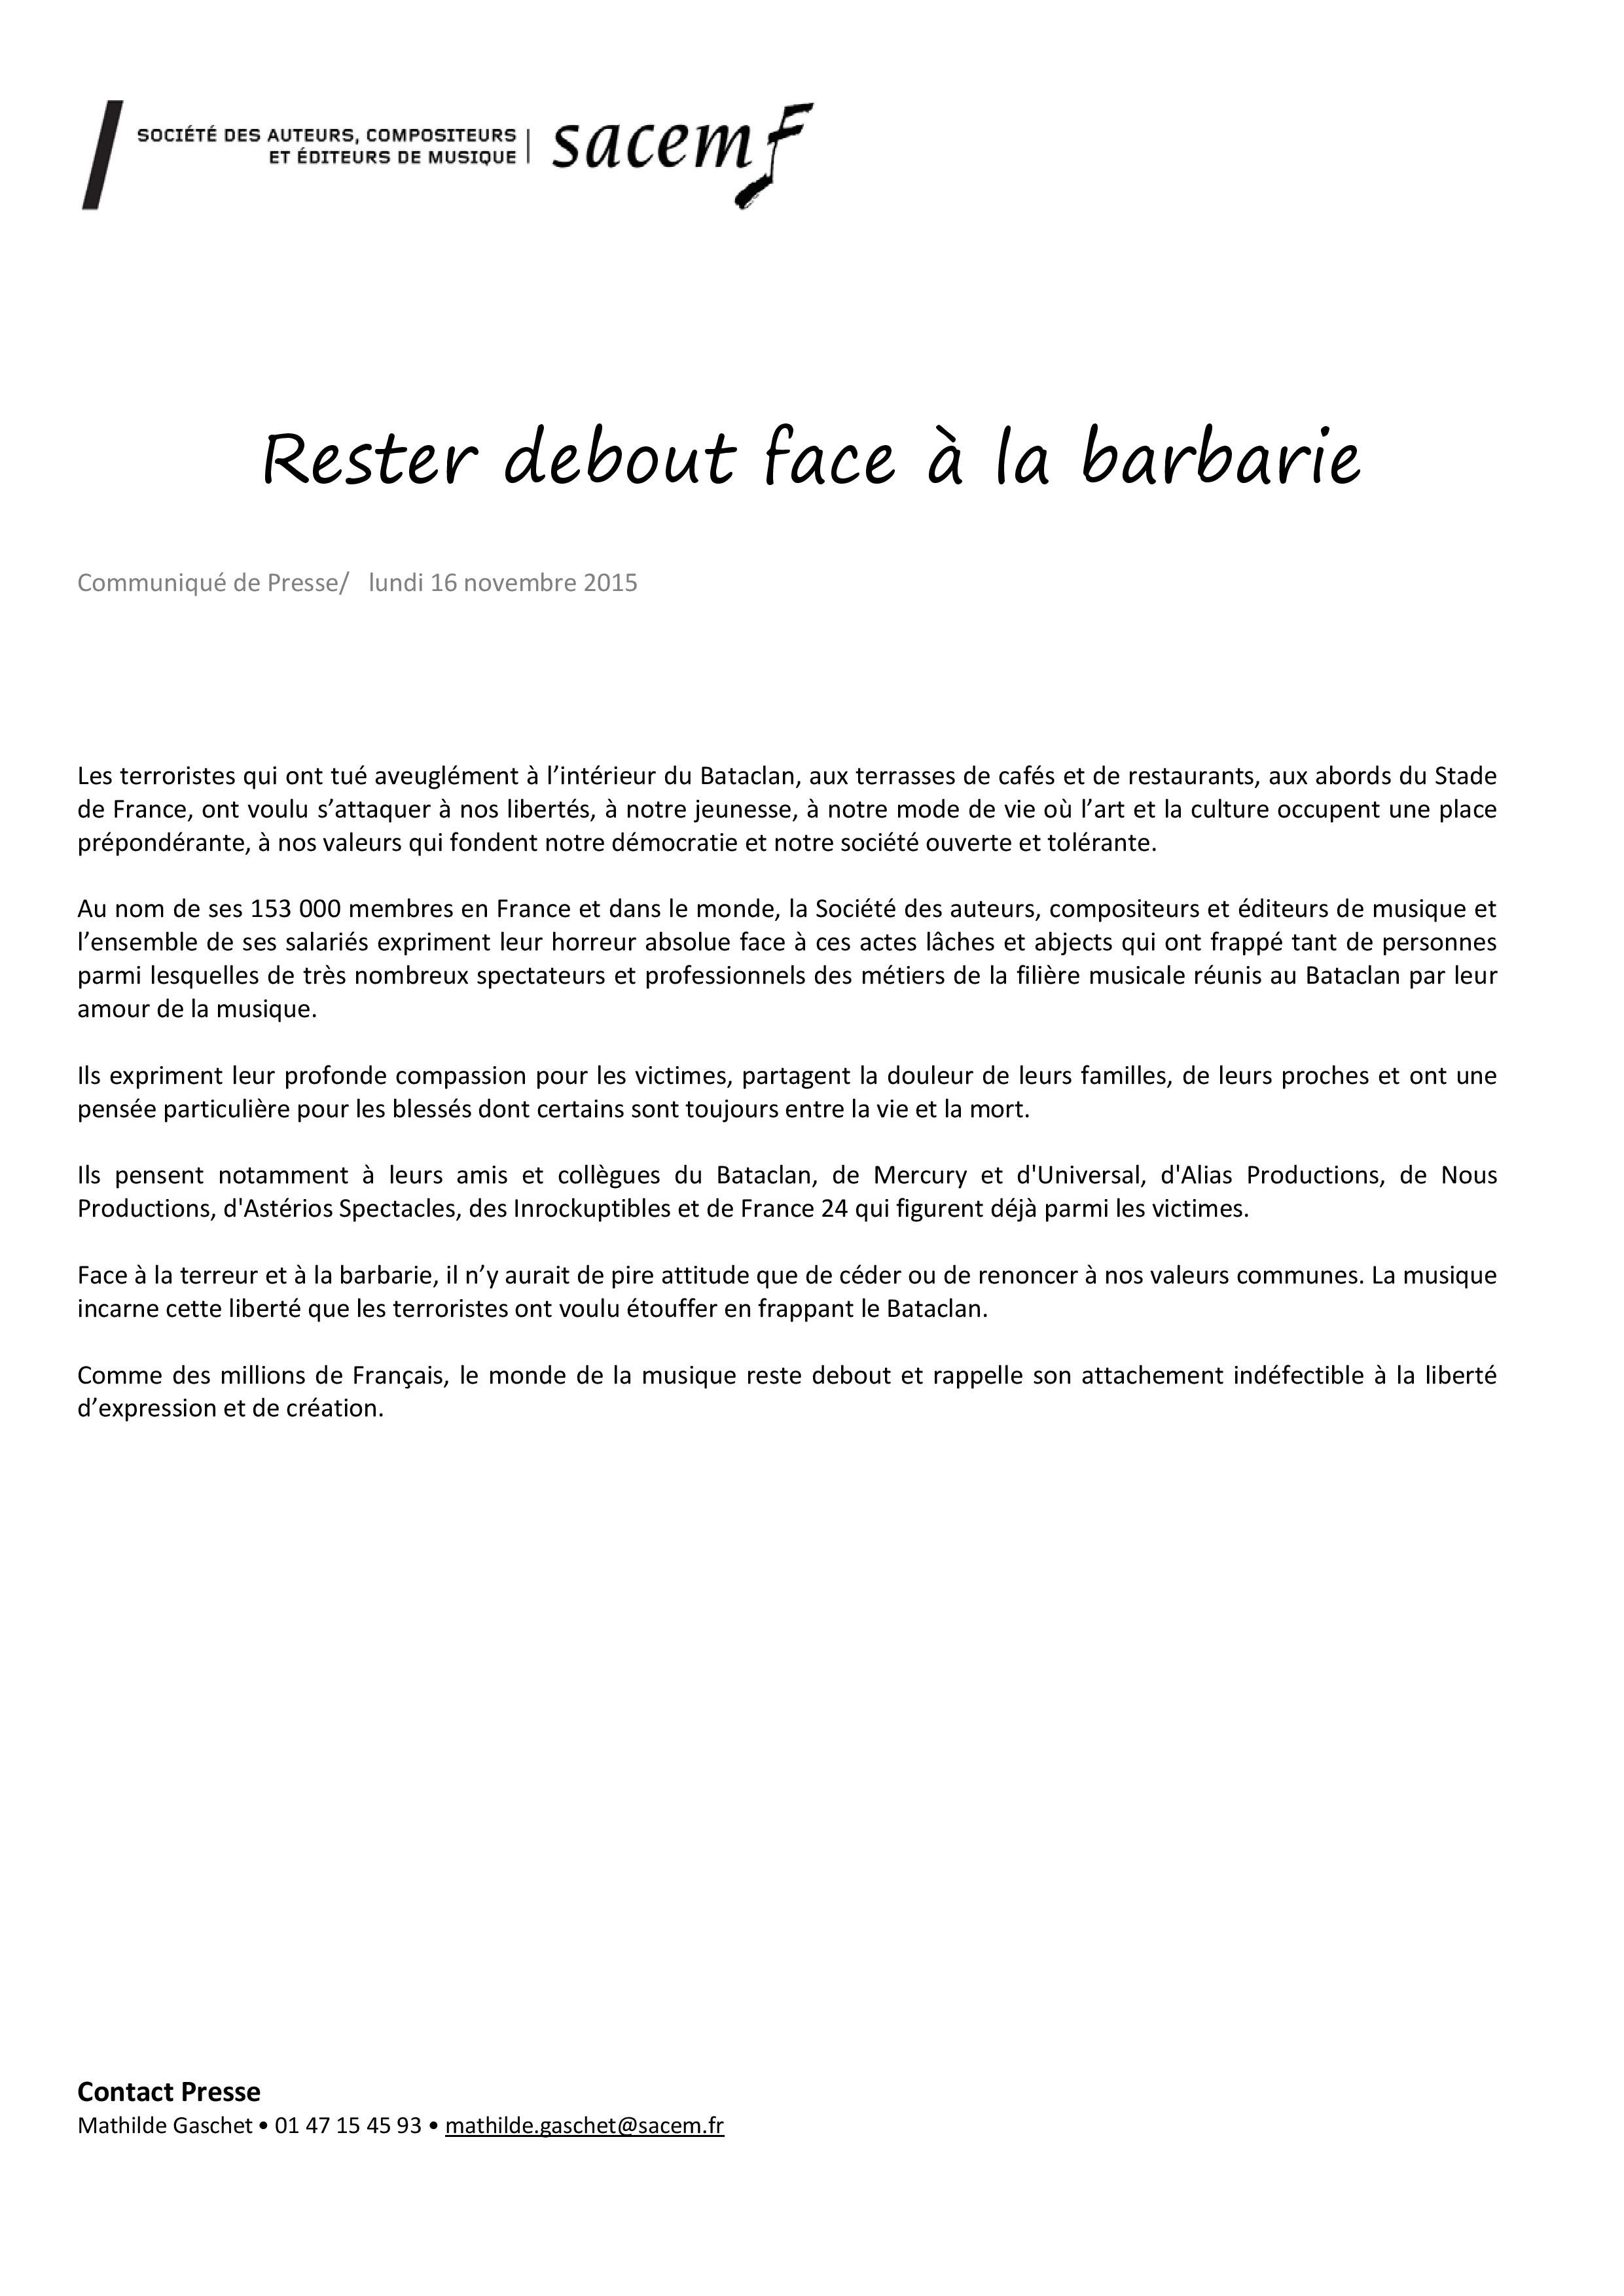 CP Sacem_ 20151116 (1)-page-001